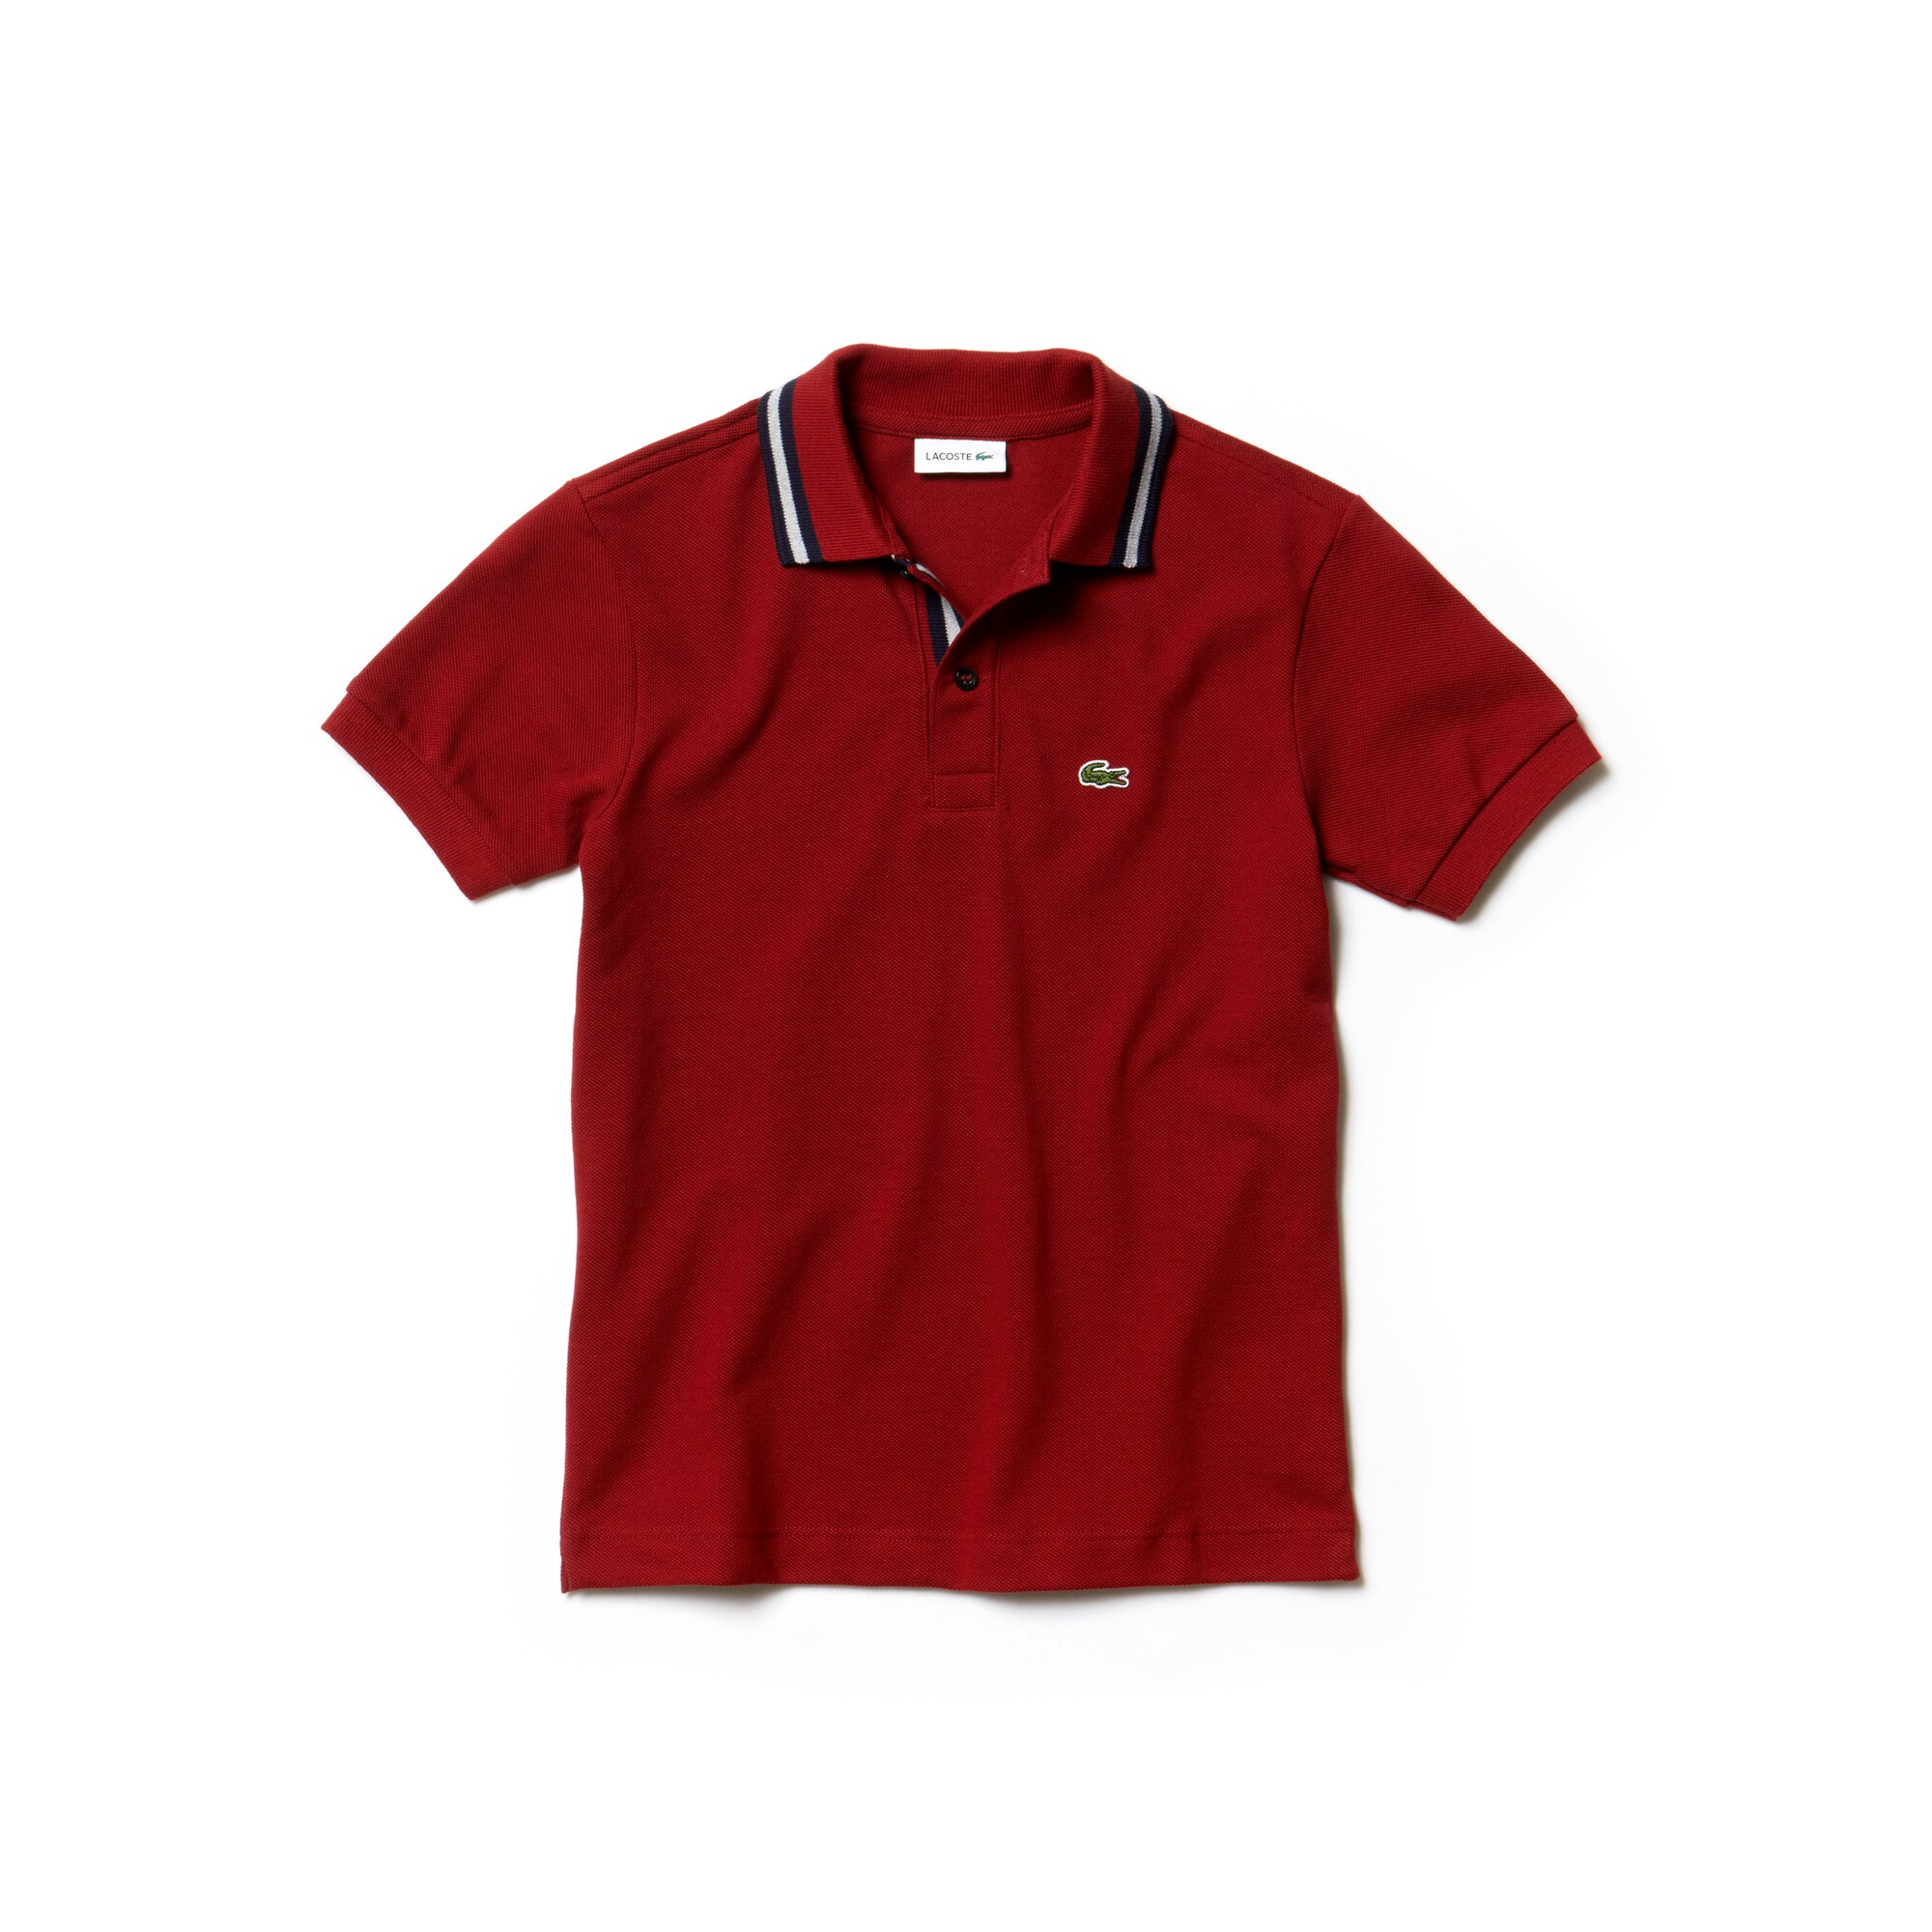 Boys' Lacoste Piped Neck Cotton Piqué Polo Shirt